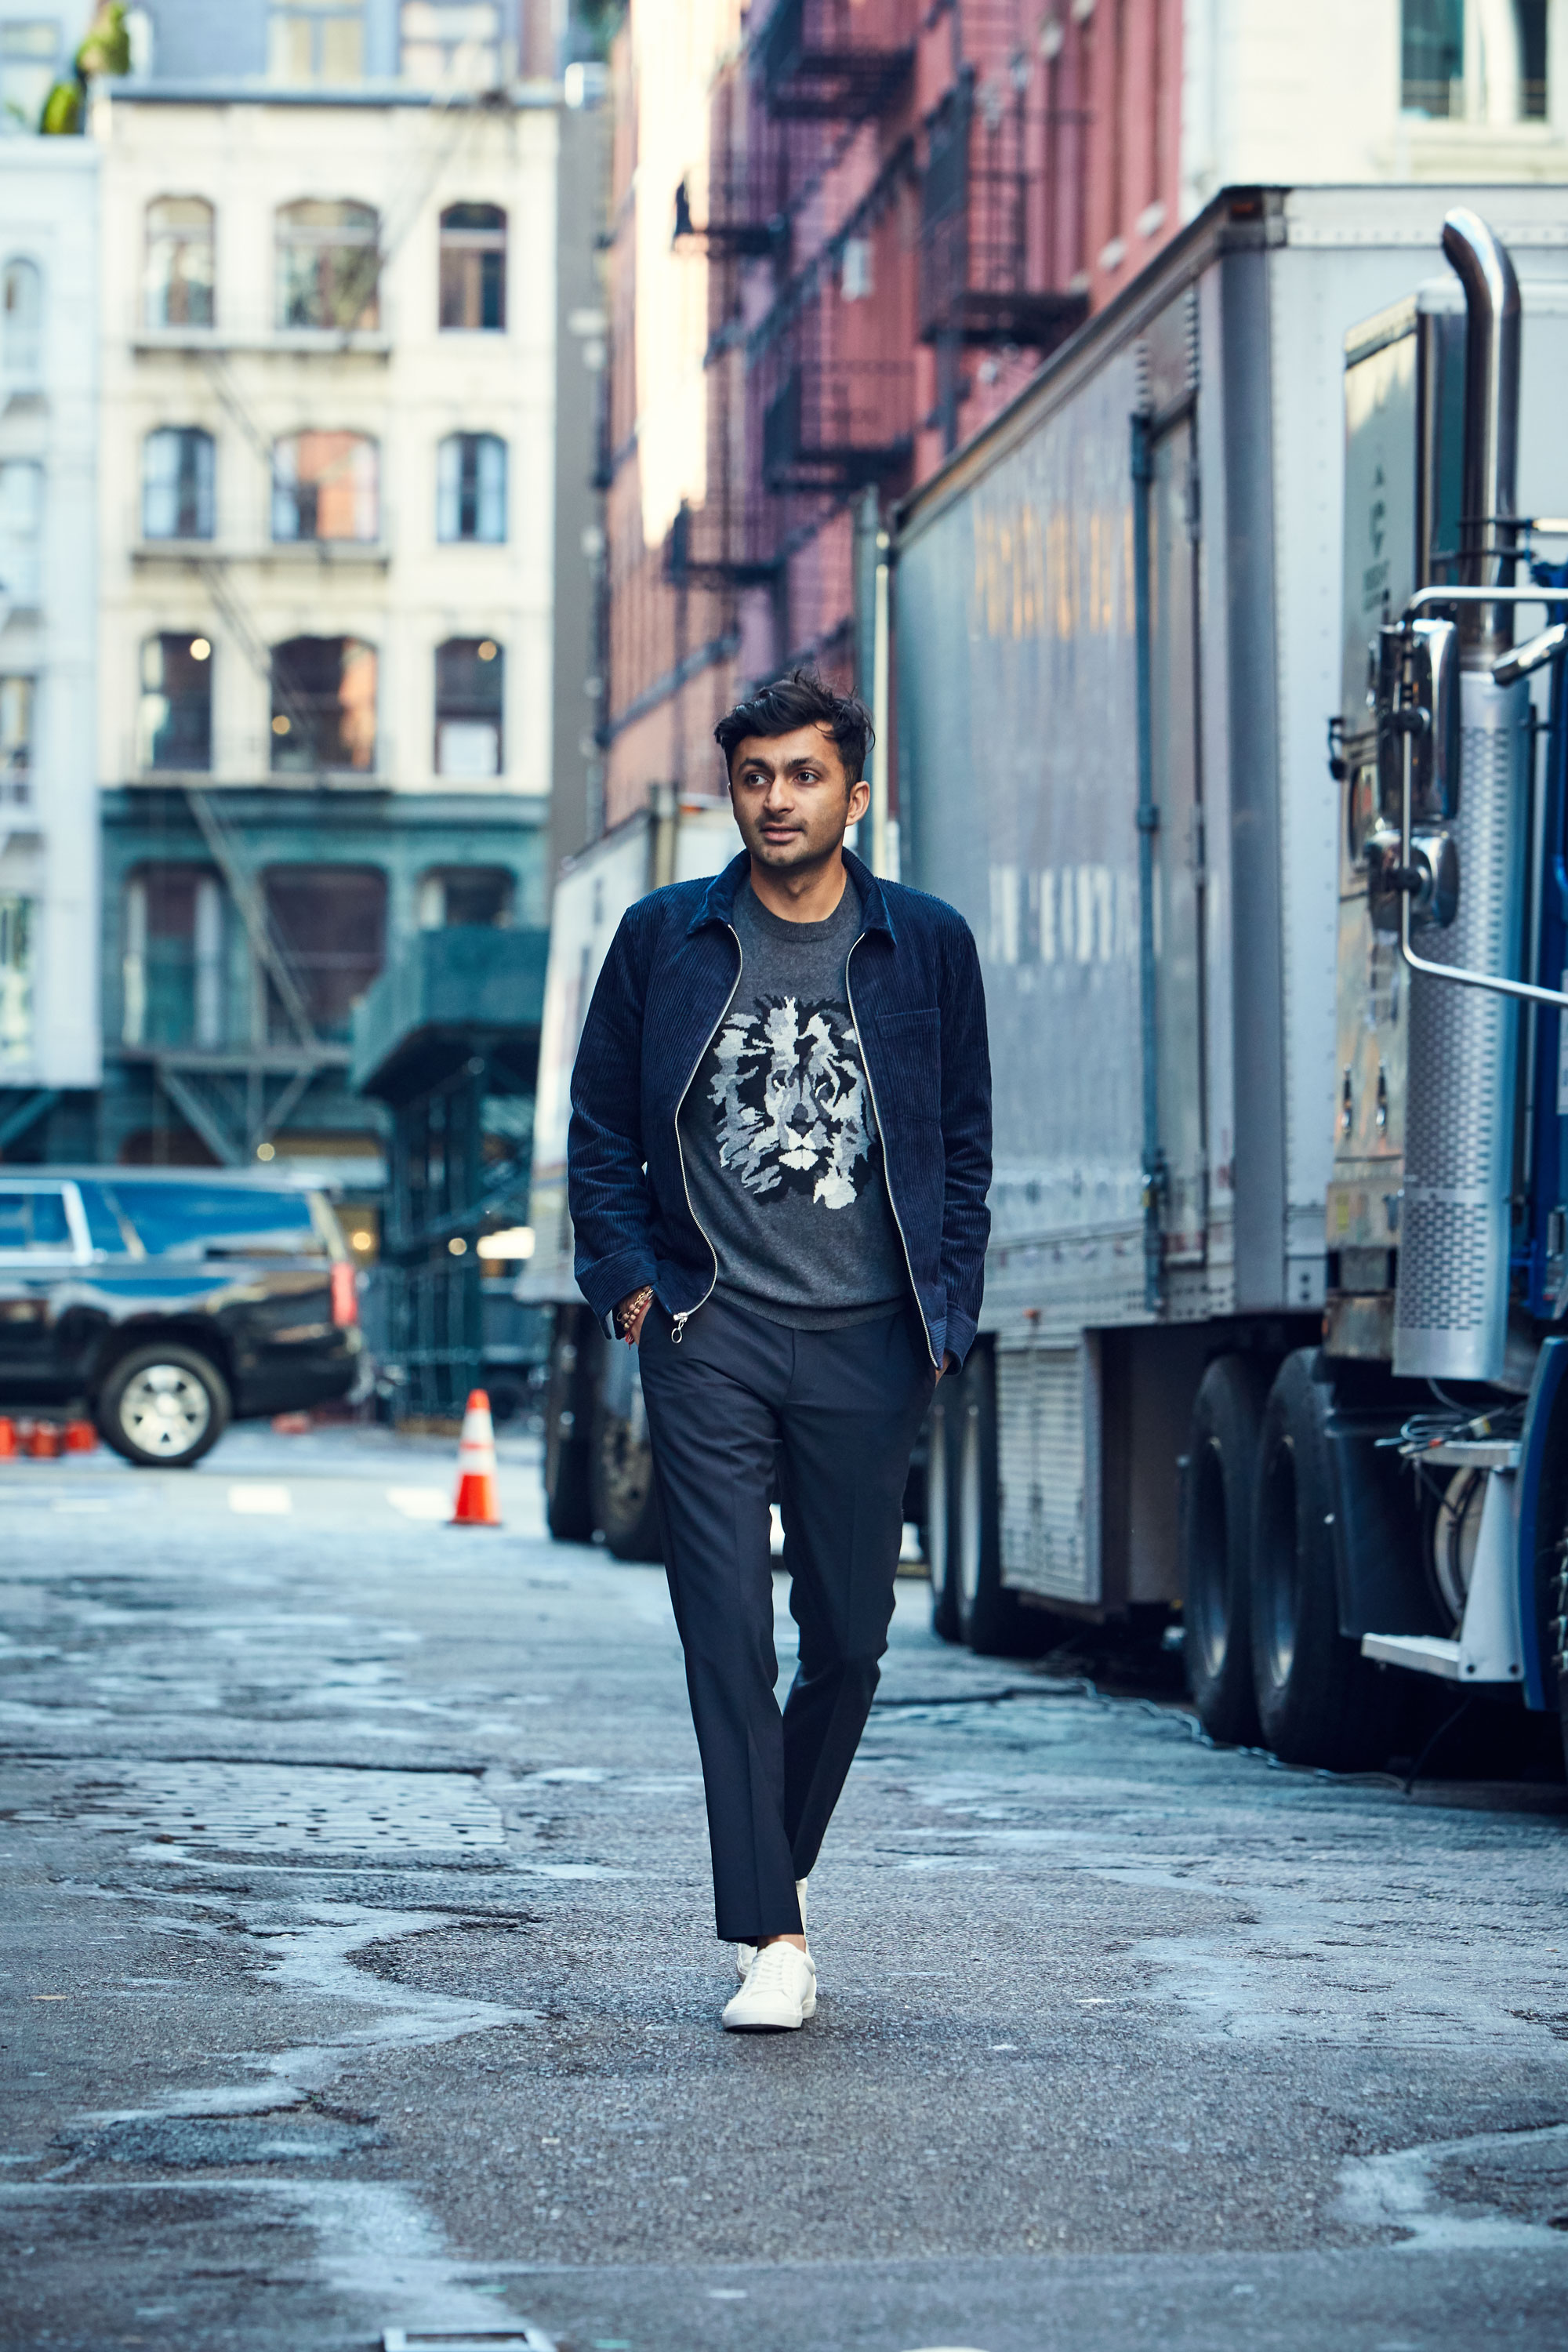 Nimesh in the streets wears the    Lightweight Wool Crew Neck (Charcoal Lion)   , the    Corduroy Shirt Jacket (Navy)   , and the    Stretch Wool Dress Pants (Navy)